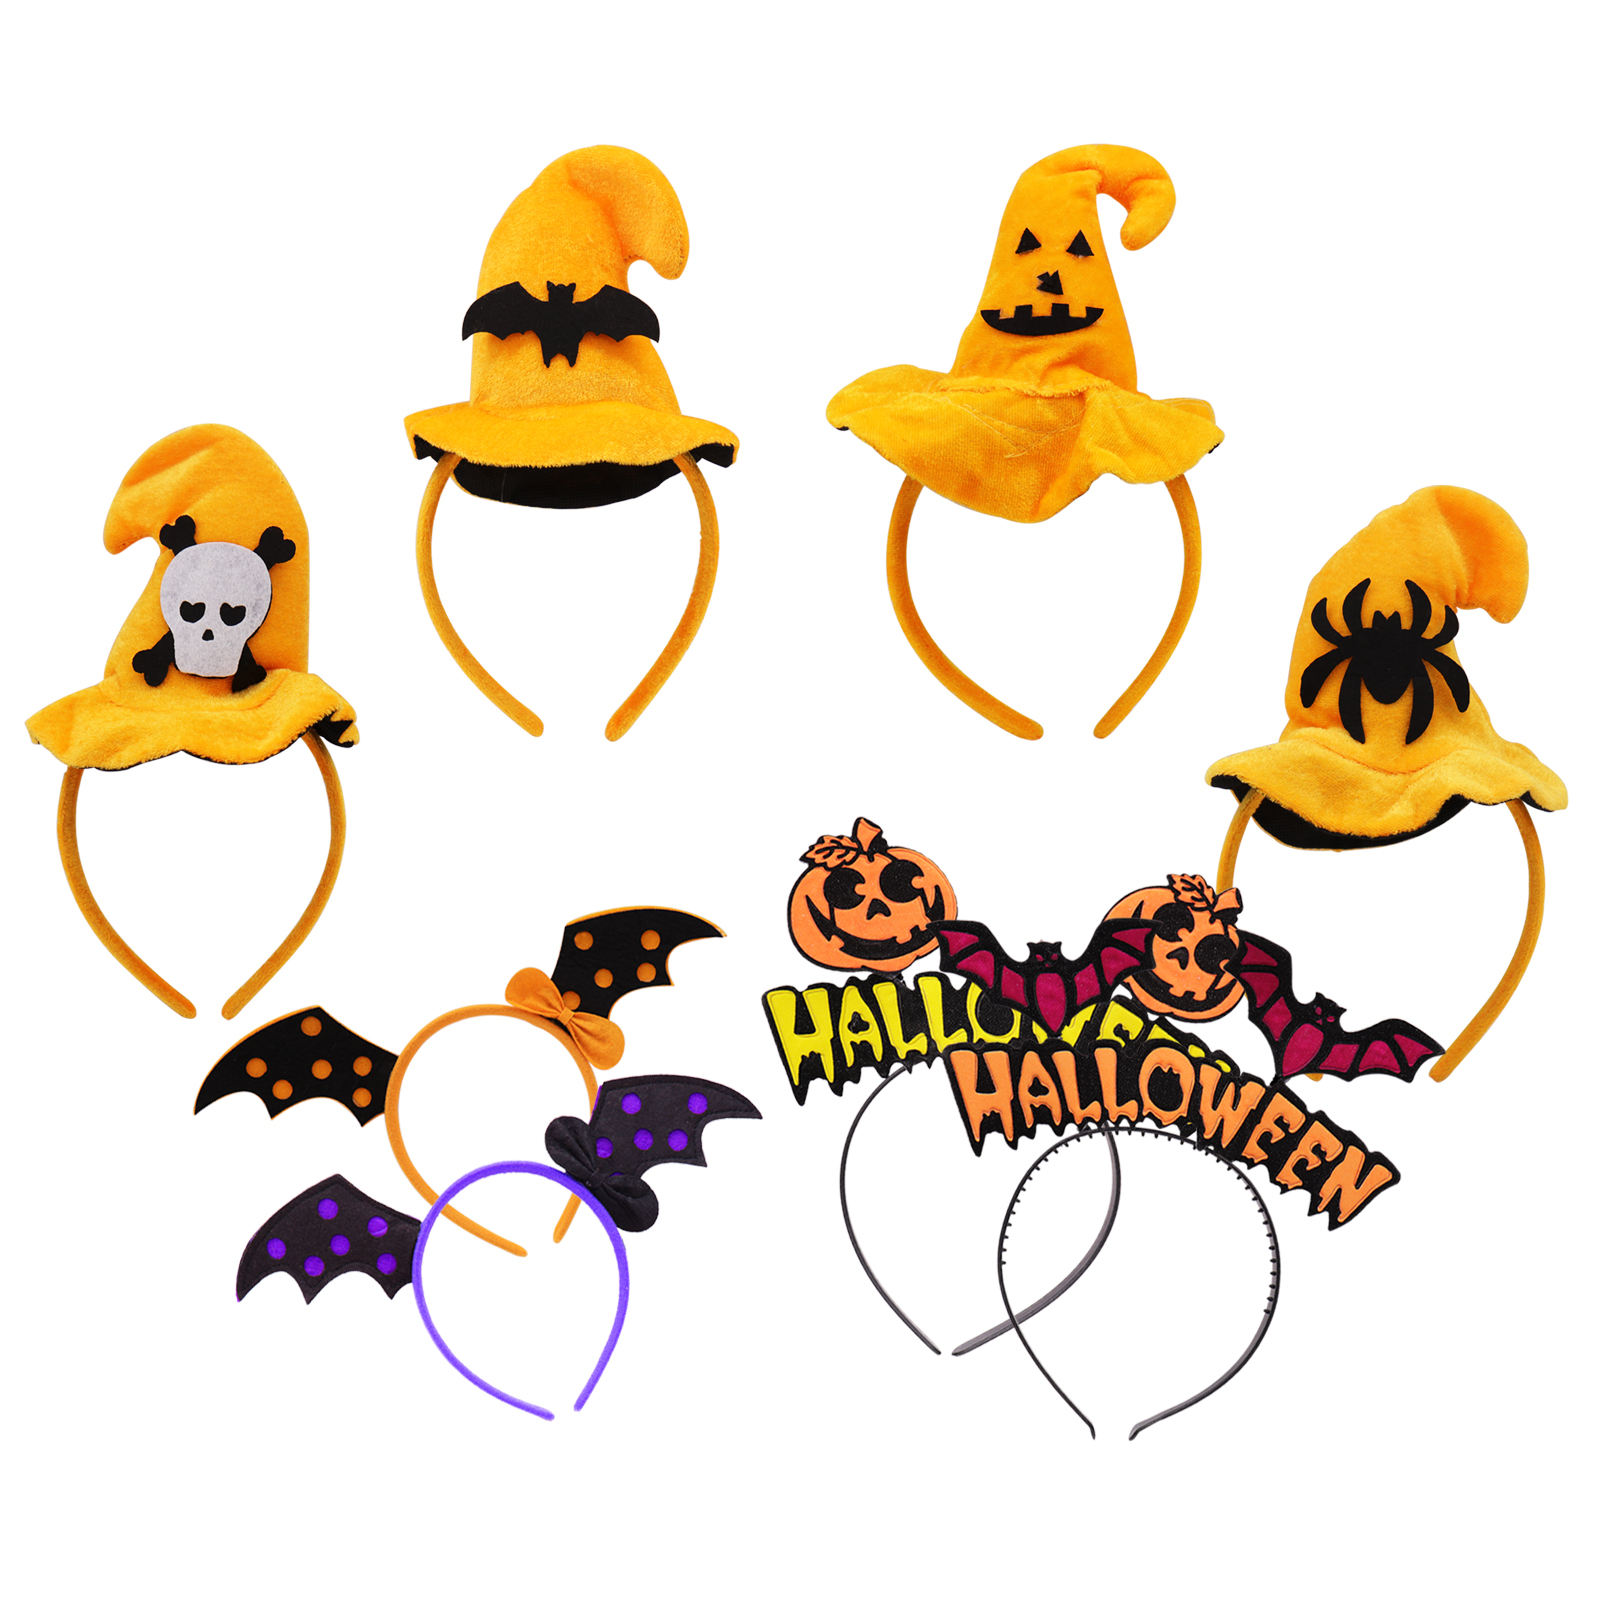 Halloween party decoration children's headdress decoration cute Halloween headband wings pumpkin head dress